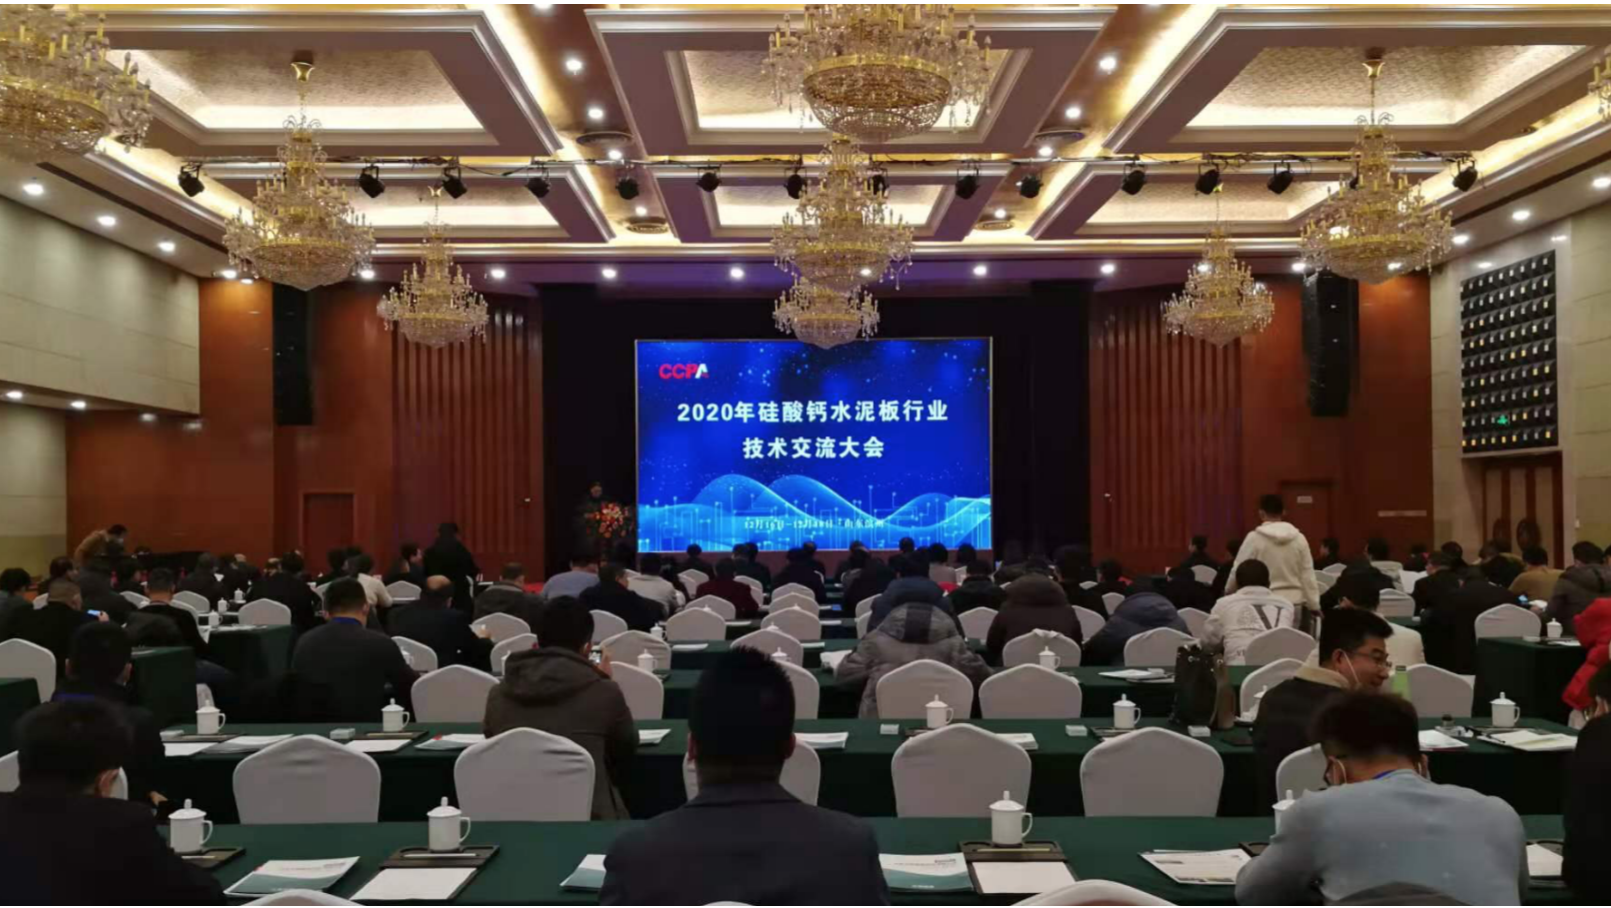 Technical exchange meeting of calcium silicate cement board industry held in 2020